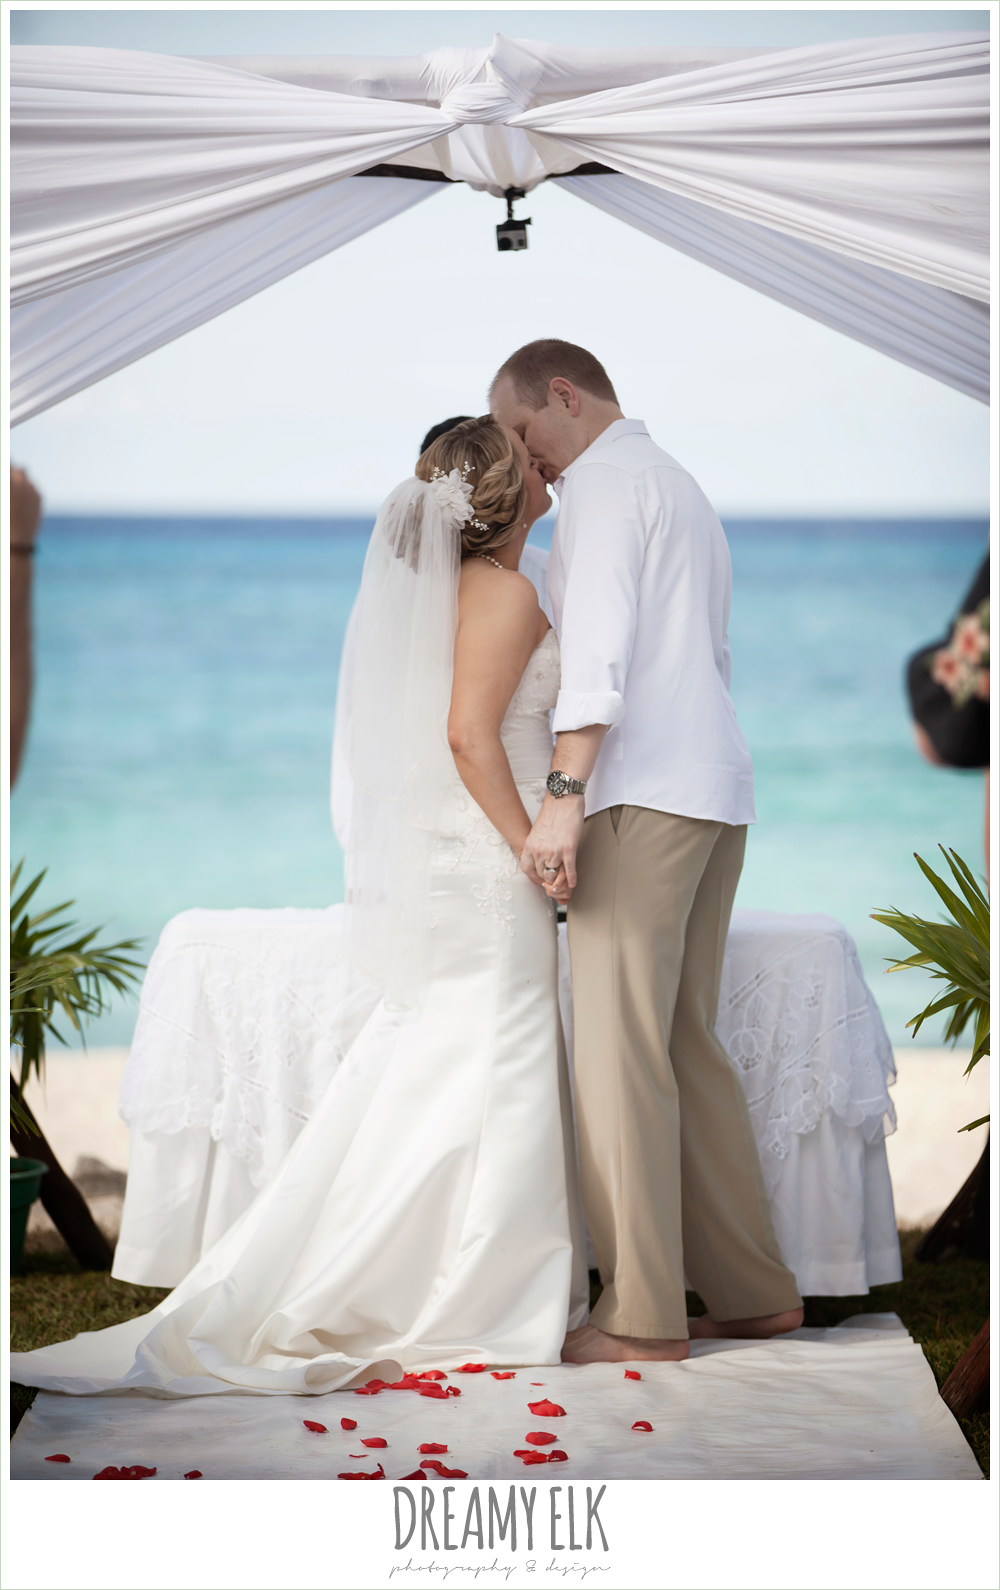 bride and groom first kiss, outdoor destination wedding, cozumel {dreamy elk photography and design} photo